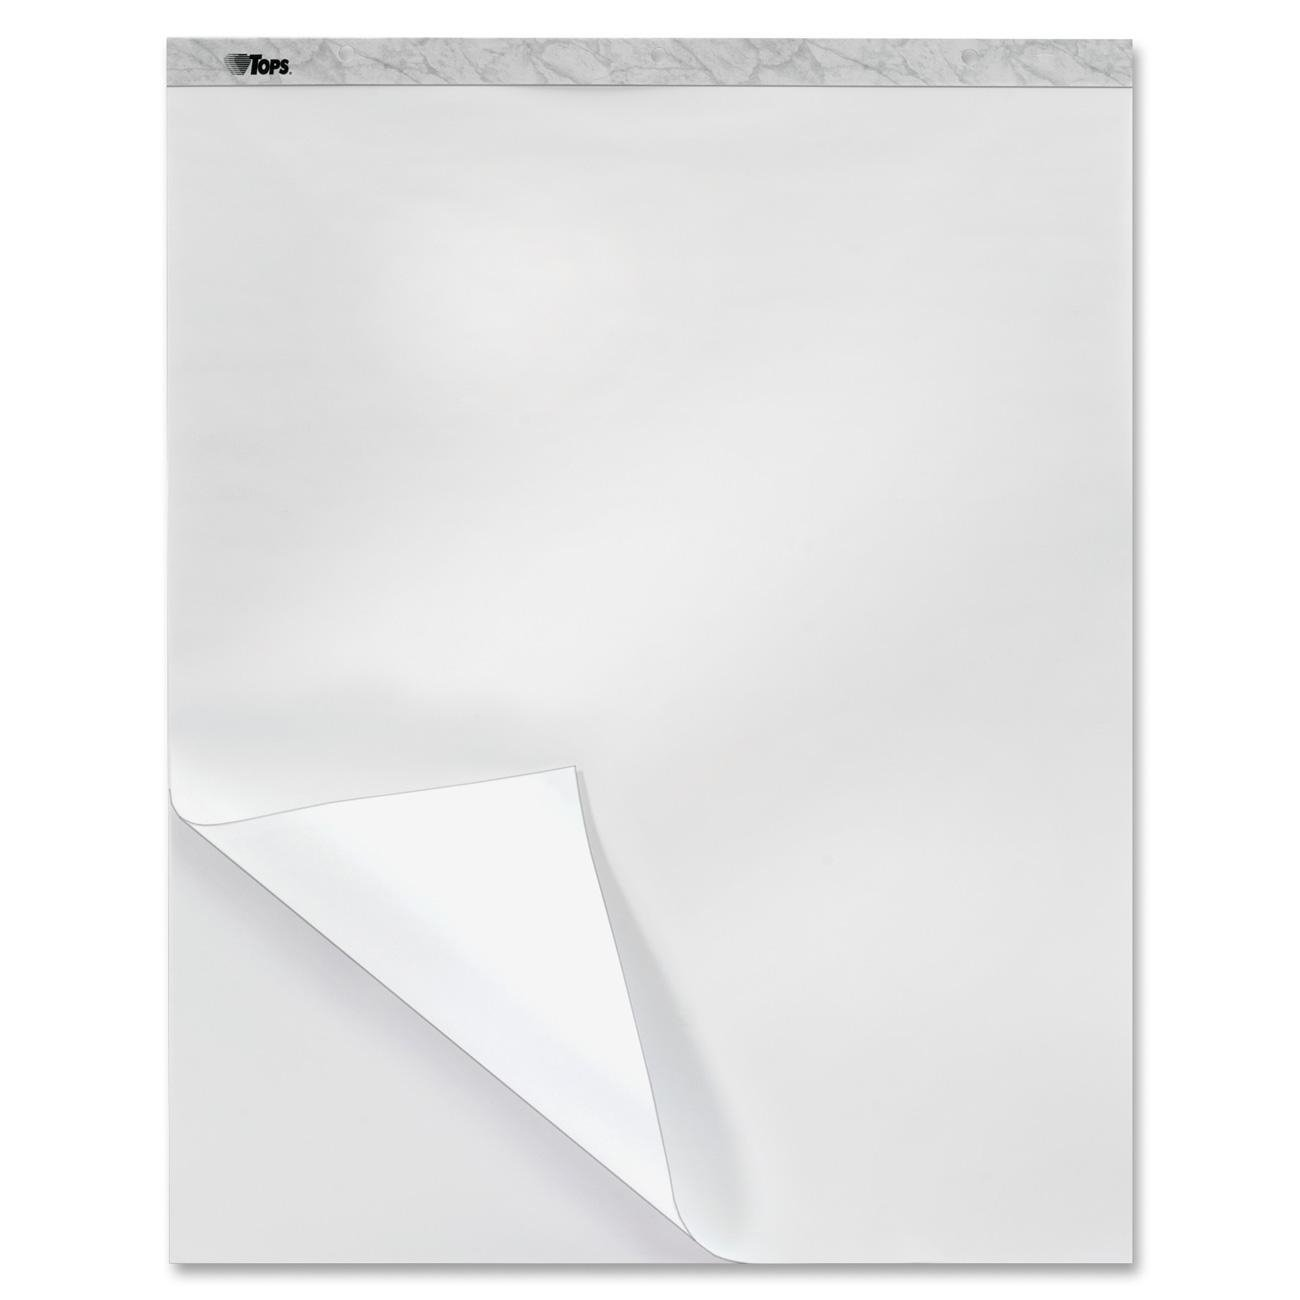 TOPS Bleed Blocker Easel Pad, 27 x 34 Inches, Recycled, 40 Sheets, White, 2 Pads (79062)